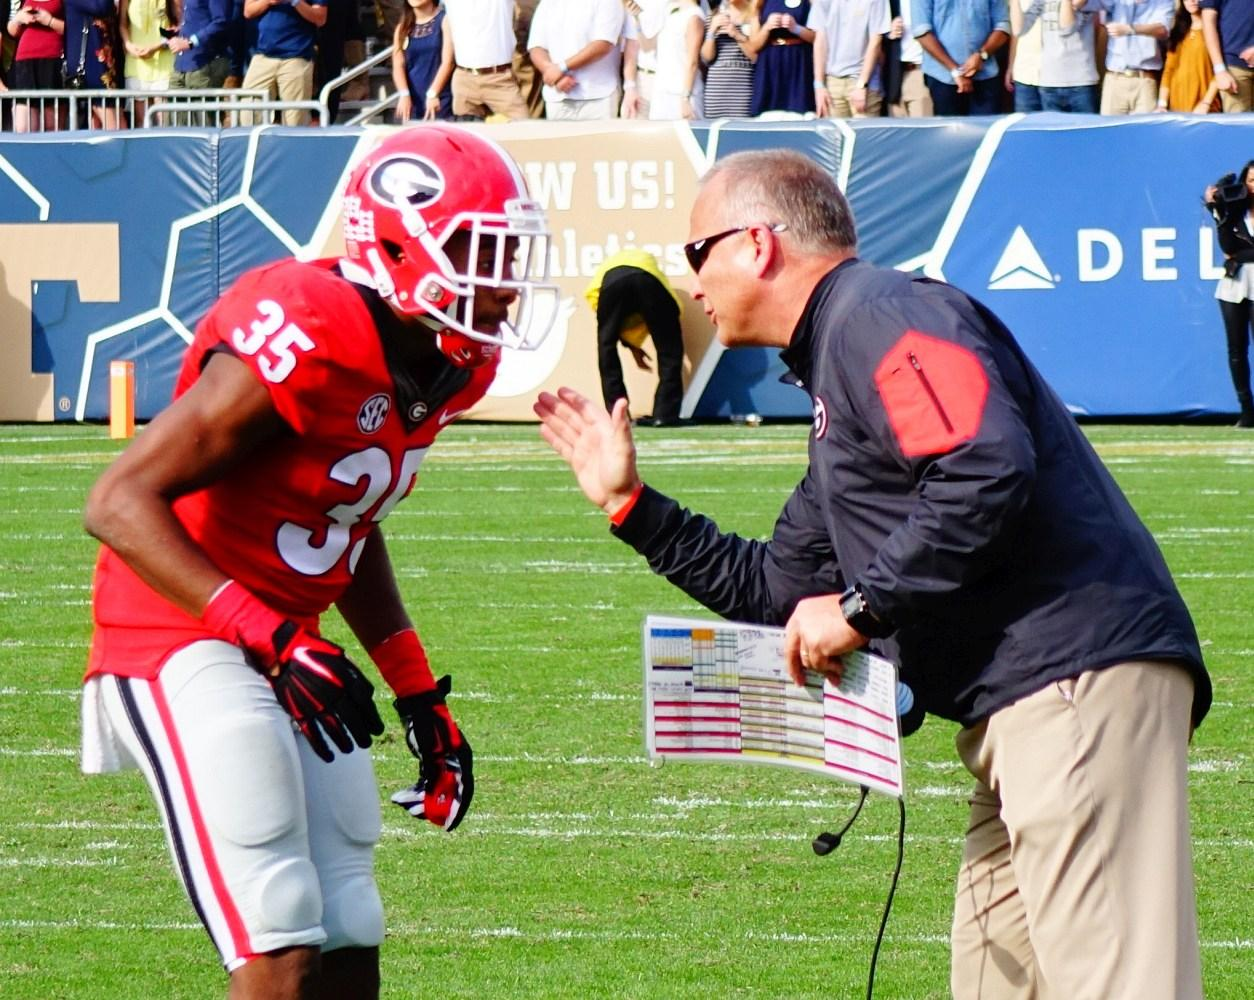 Mark Richt doing some coaching on No.35 Aaron Davis - 4th quarter - UGA vs. GT 28-Nov-2015 (Photo by Greg Poole - Bulldawg Illustrated)